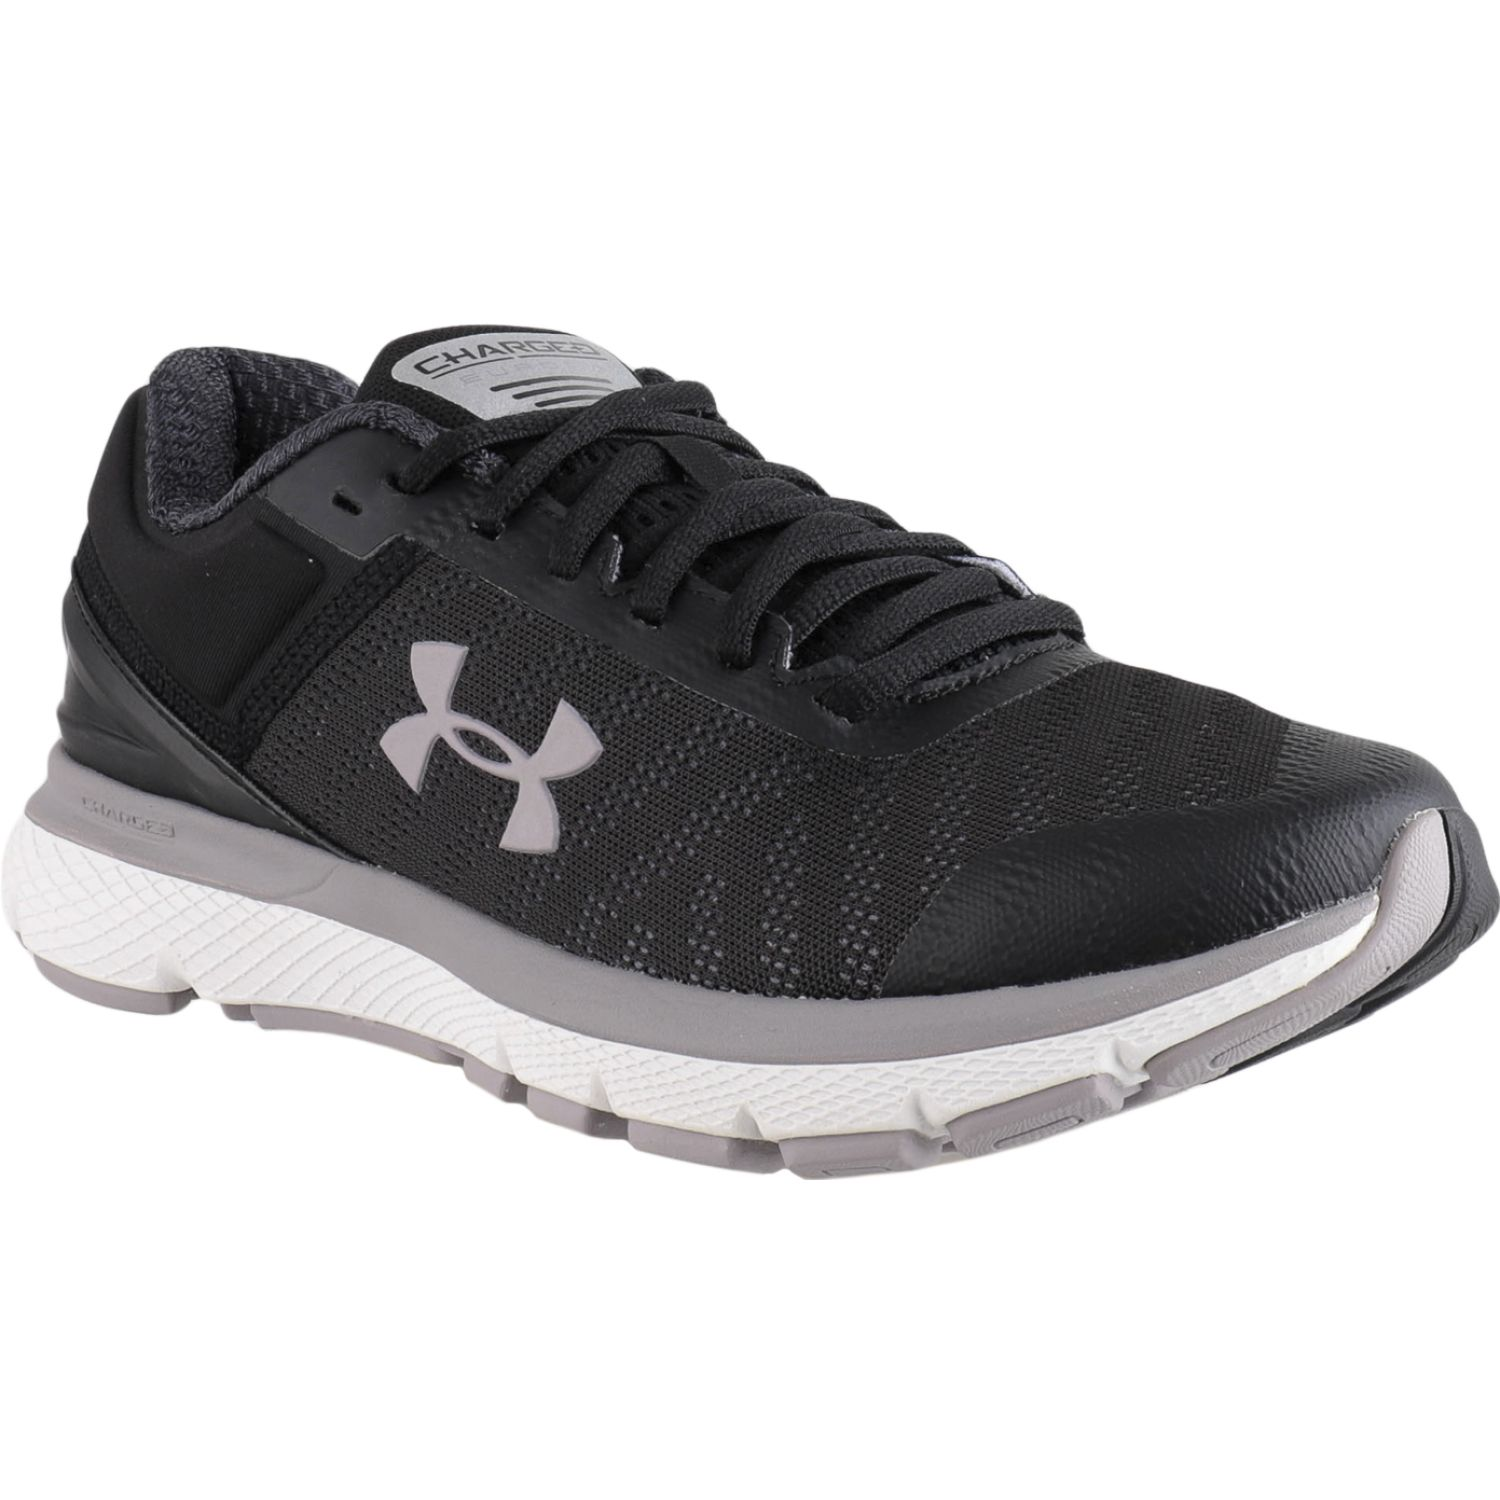 Under Armour ua w charged europa 2 Negro / blanco Trail Running